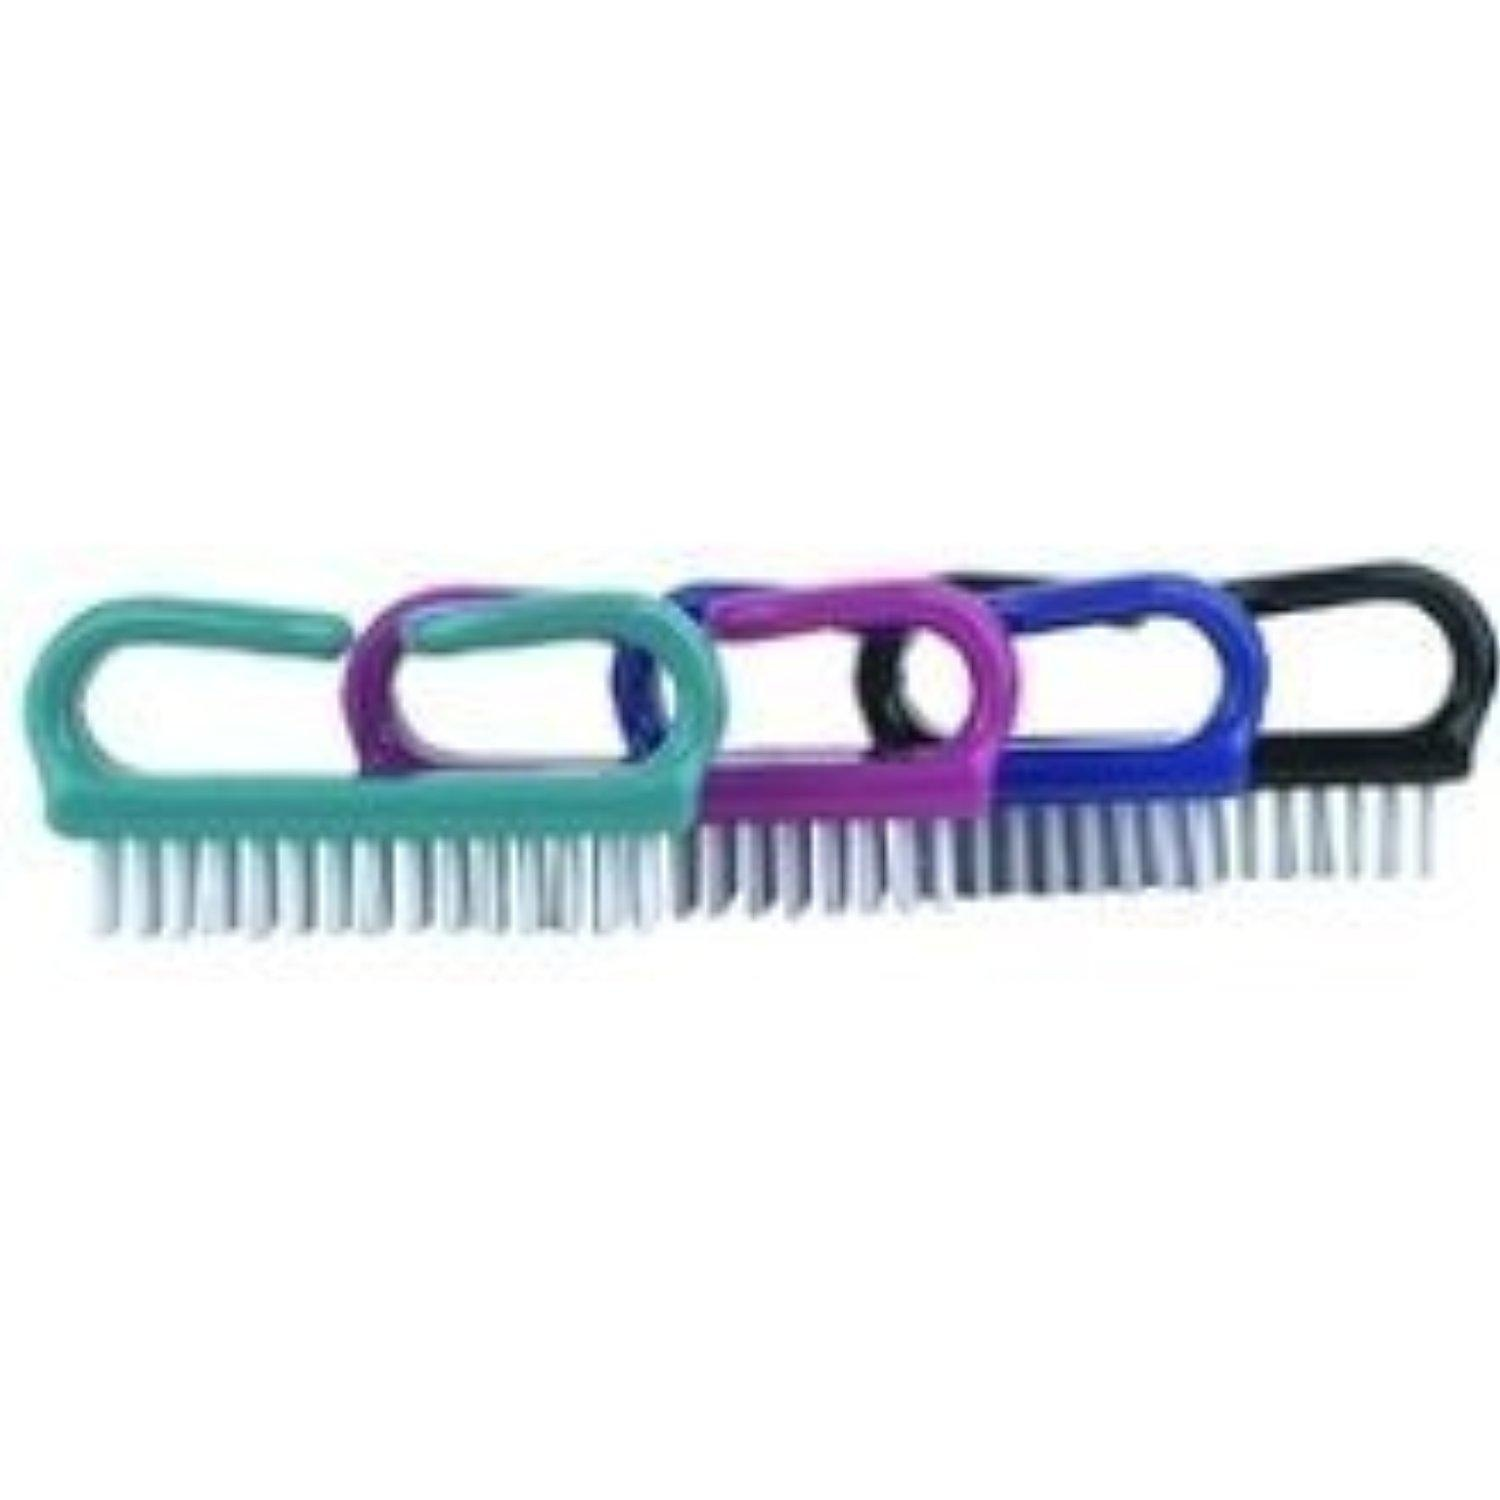 Deluxe Handle Nail Brush (Pack of 6) by J & D Beauty Products